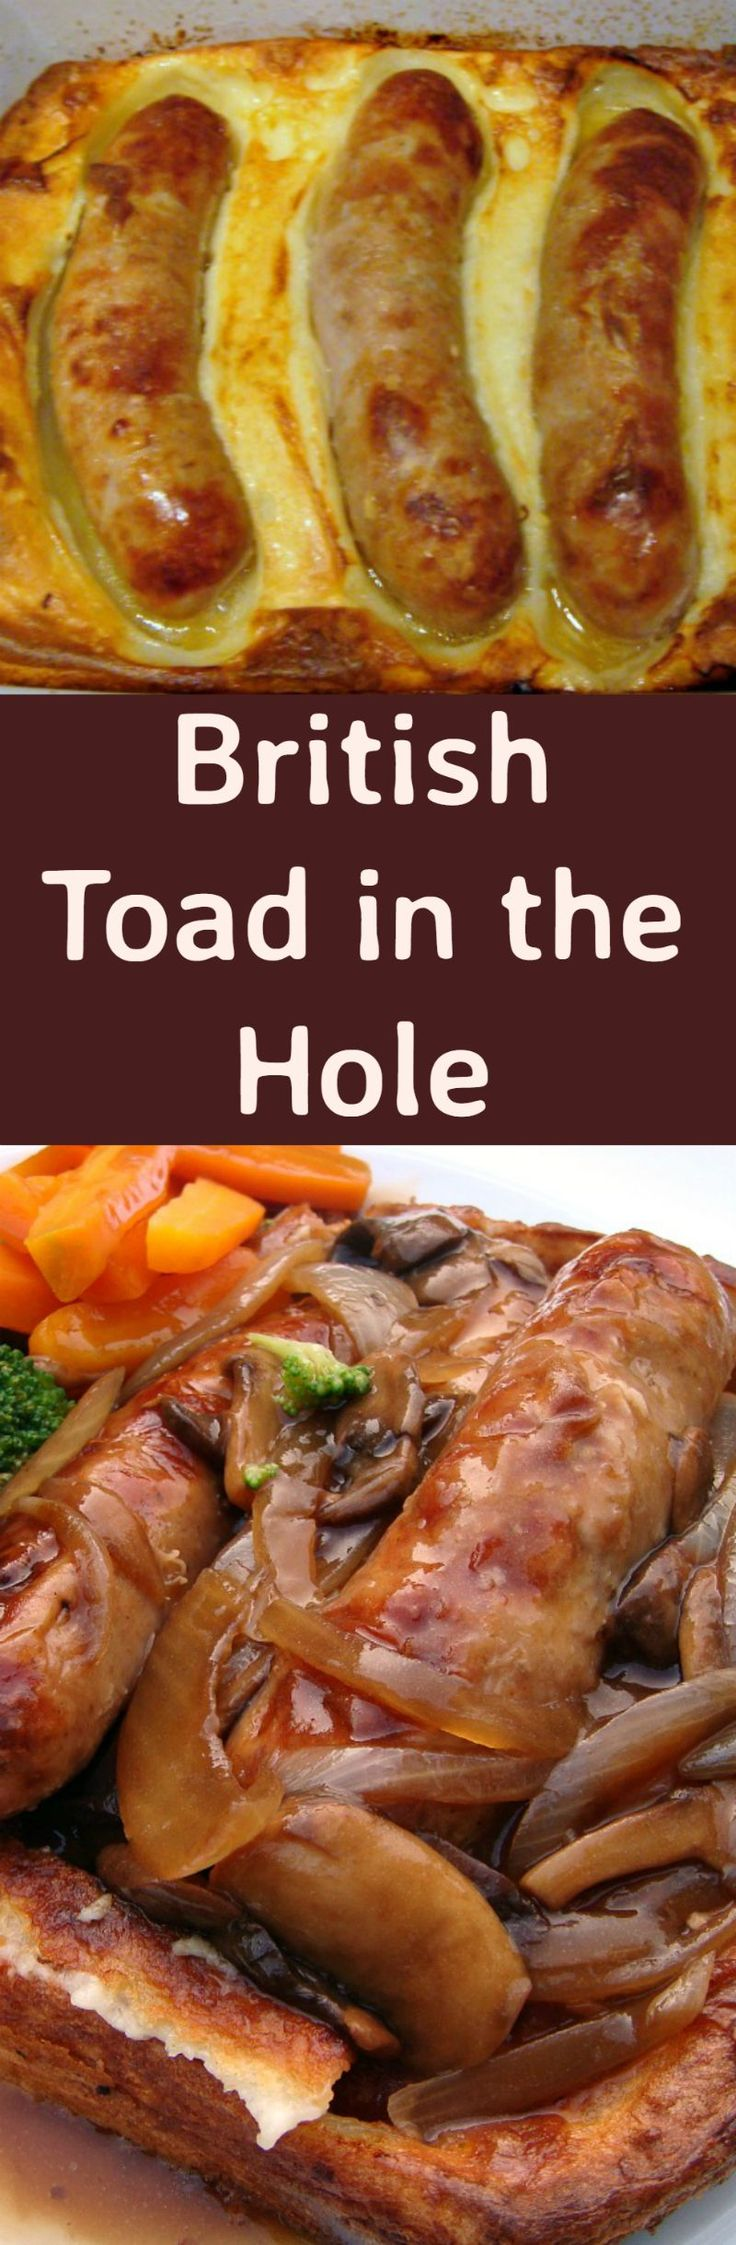 81 best british food images on pinterest british food recipes british toad in the hole its a delicious easy dinner with sausages baked in forumfinder Image collections